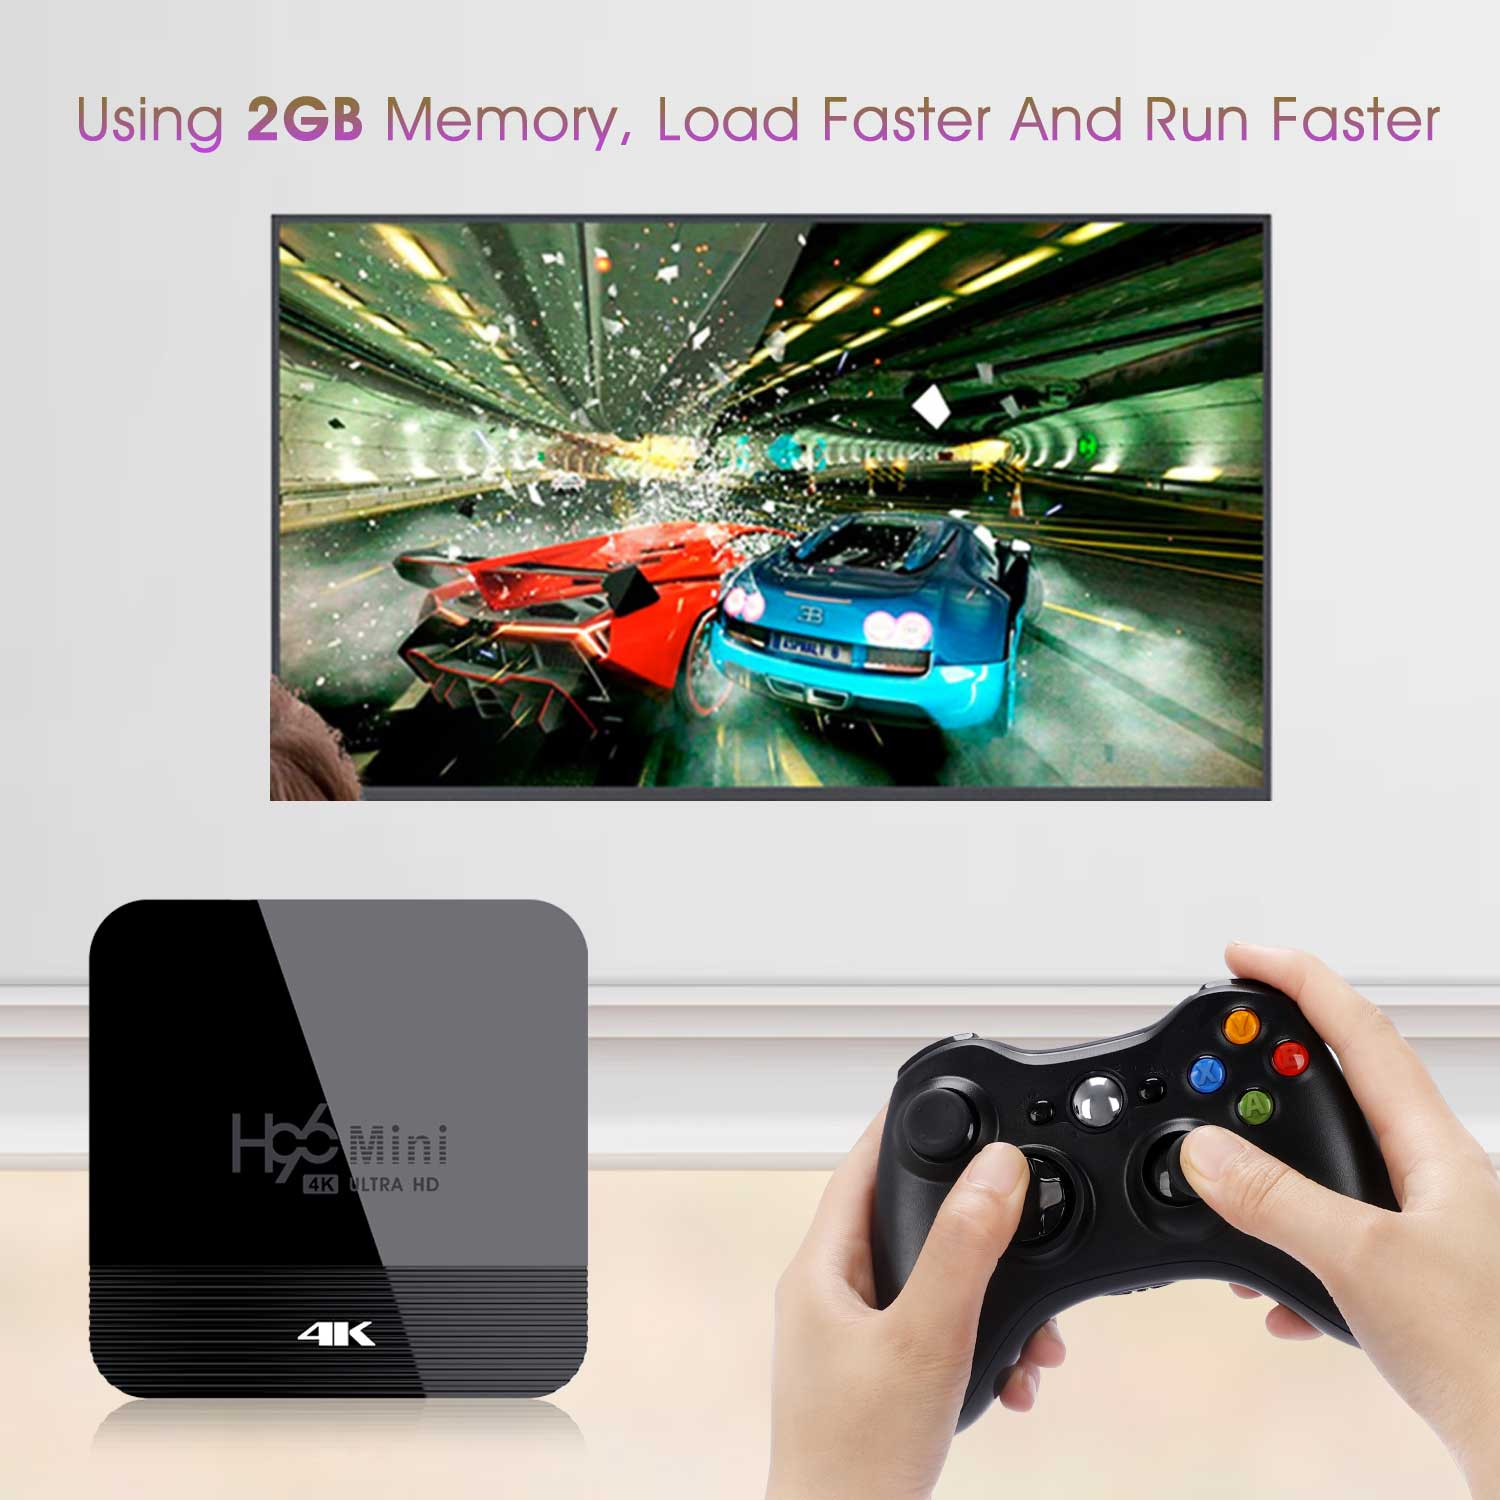 2019 Newest H96 Mini H8 RK3228A 4K TV Box 2GB+16GB Android 9.0 Set Top Box with BT4.0 2.4G/5G WiFi 6